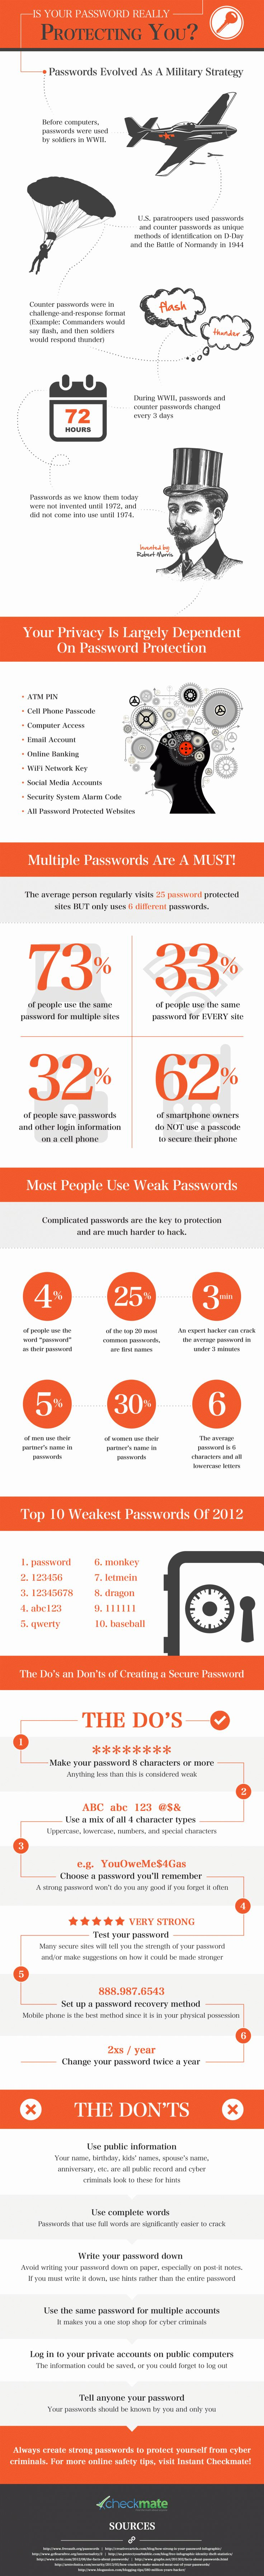 Securing a Strong Password Infographic